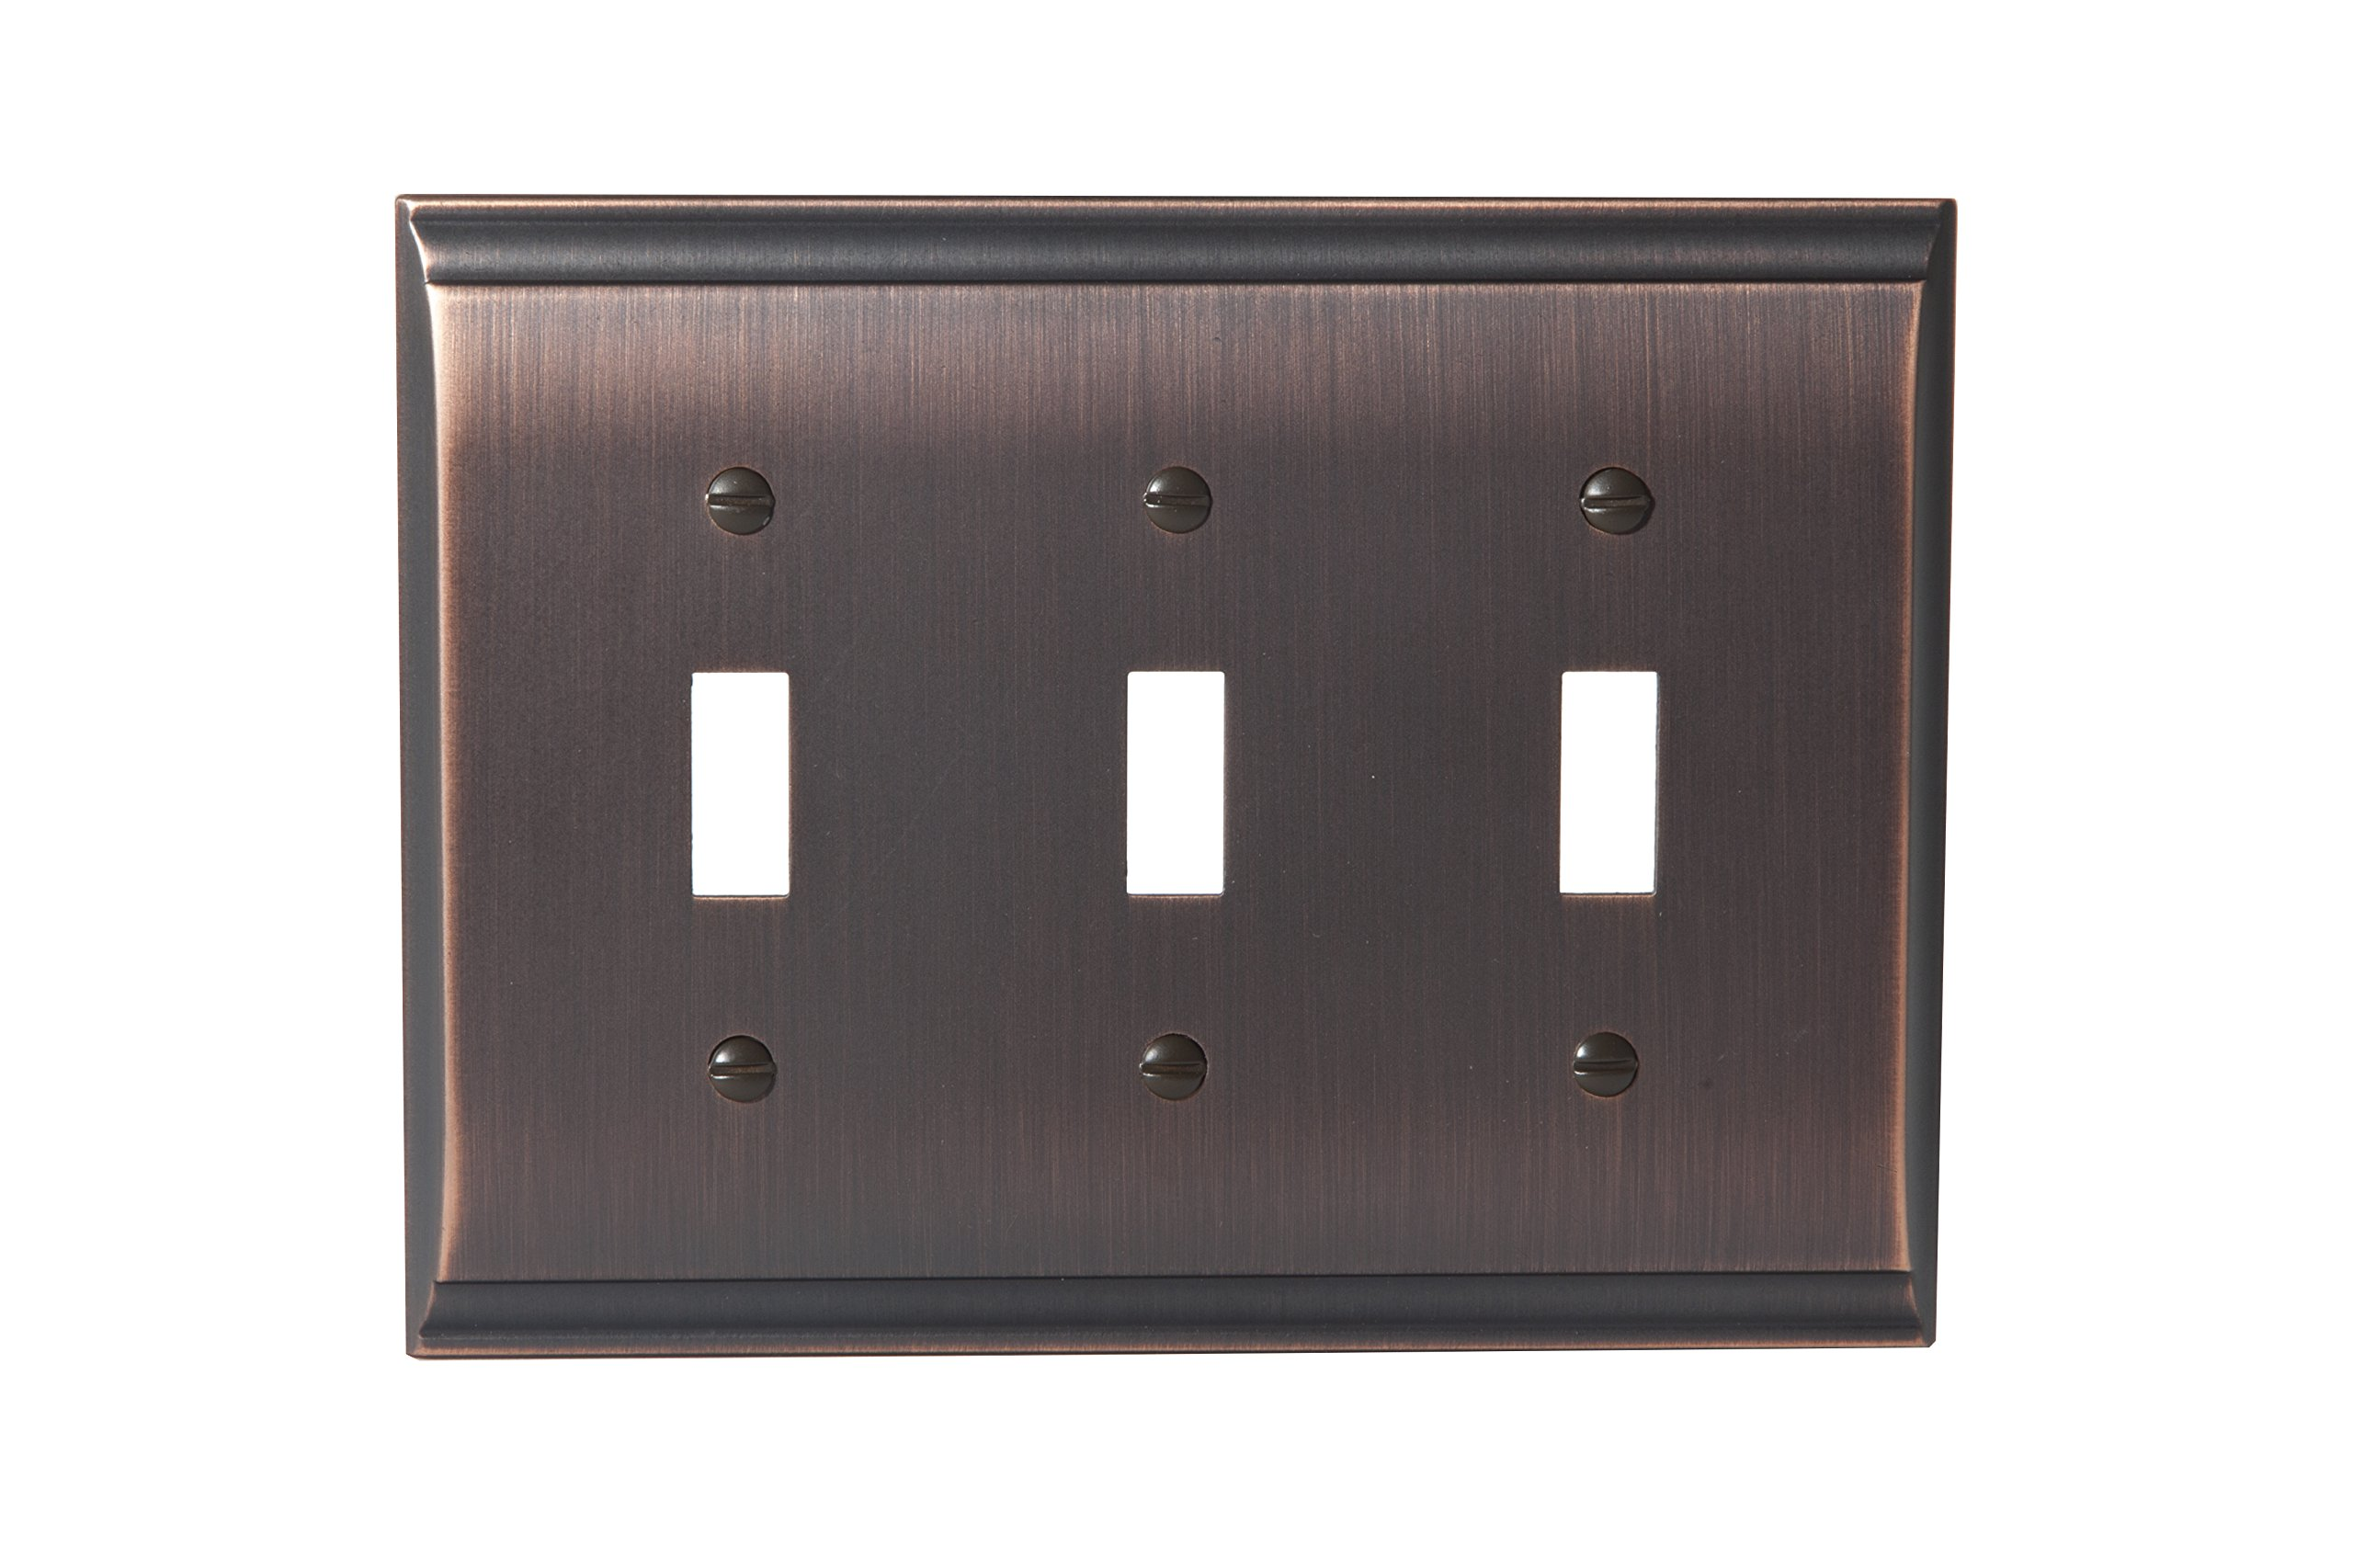 Amerock BP36502ORB Candler 3 Toggle Wall Plate - Oil-Rubbed Bronze by Amerock